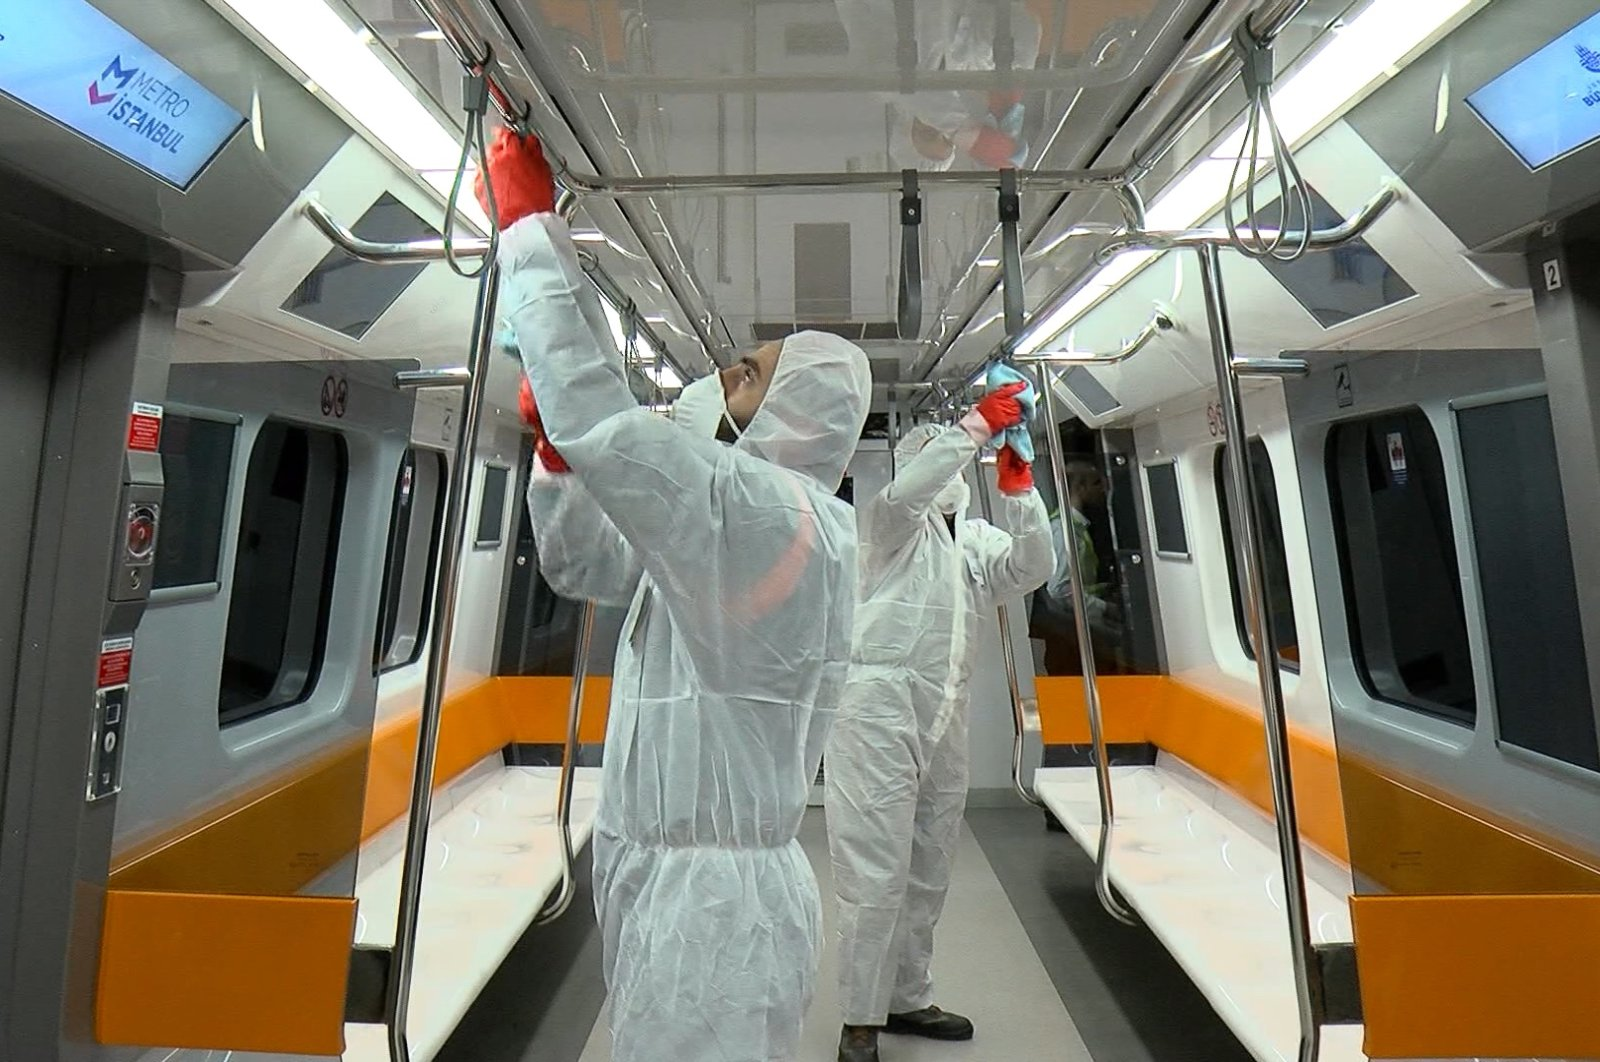 Health workers disinfect Istanbul's metro trains during off hours, March 4, 2020. (DHA Photo)